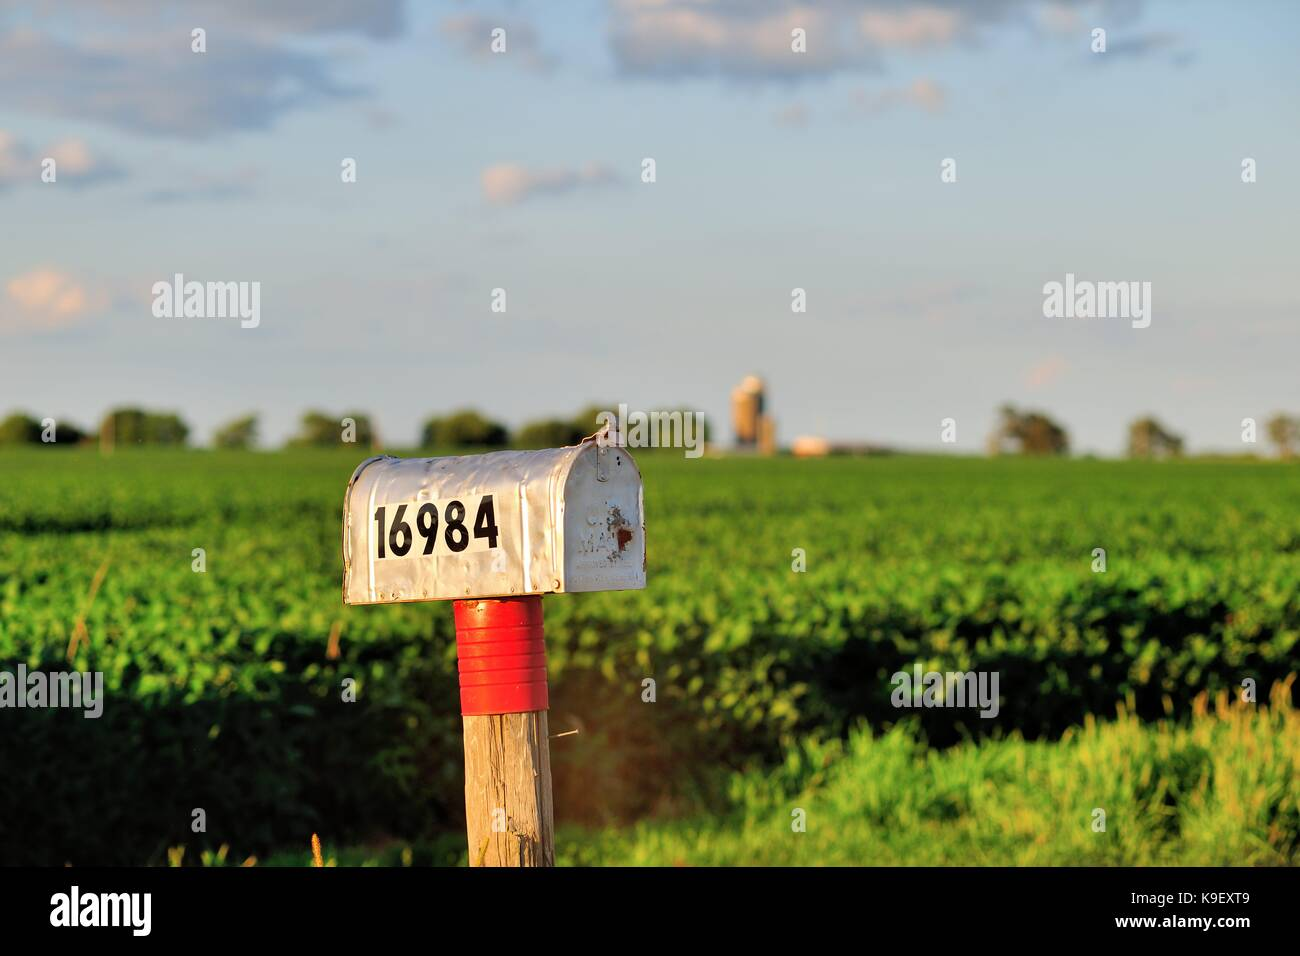 An isolated, lone mailbox along a rural dirt road in Illinois farm country, near Sandwich, Illinois, USA. - Stock Image